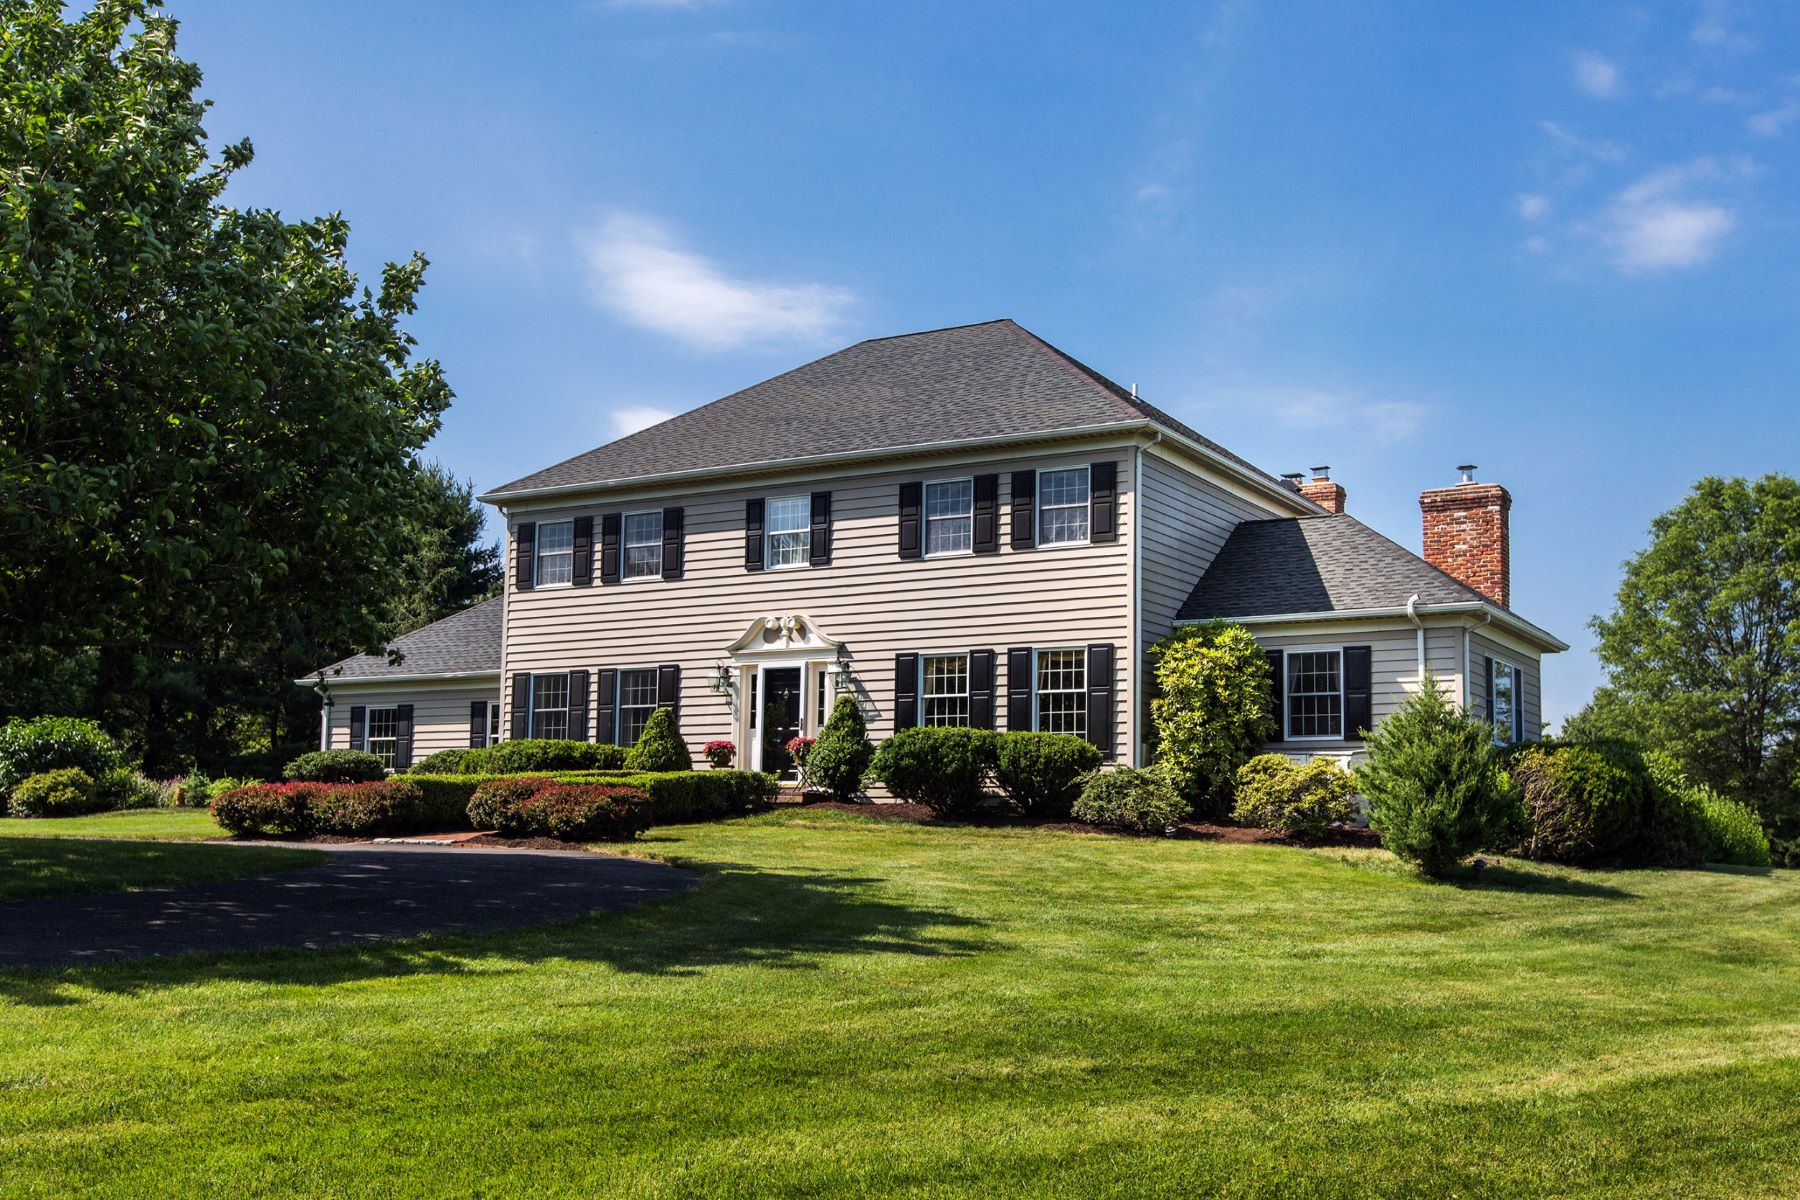 Single Family Home for Sale at Stately Georgian Colonial 3731 STREET RD Doylestown, Pennsylvania, 18902 United States